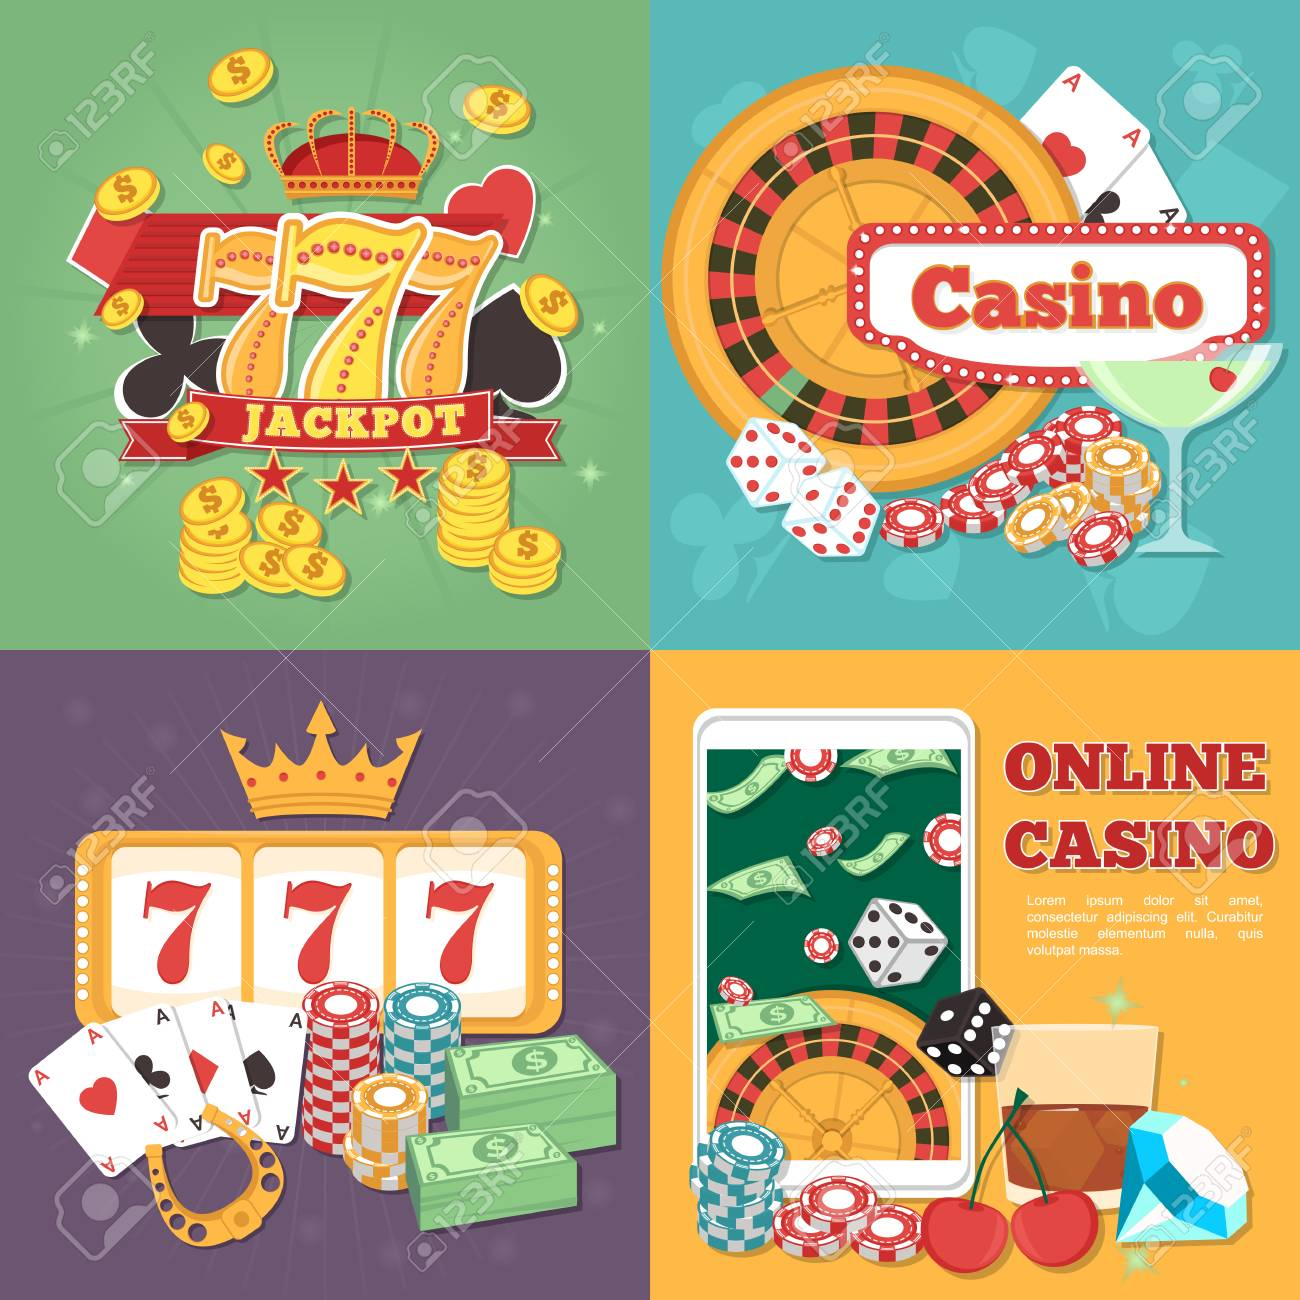 no deposit bonus codes for free spin casino